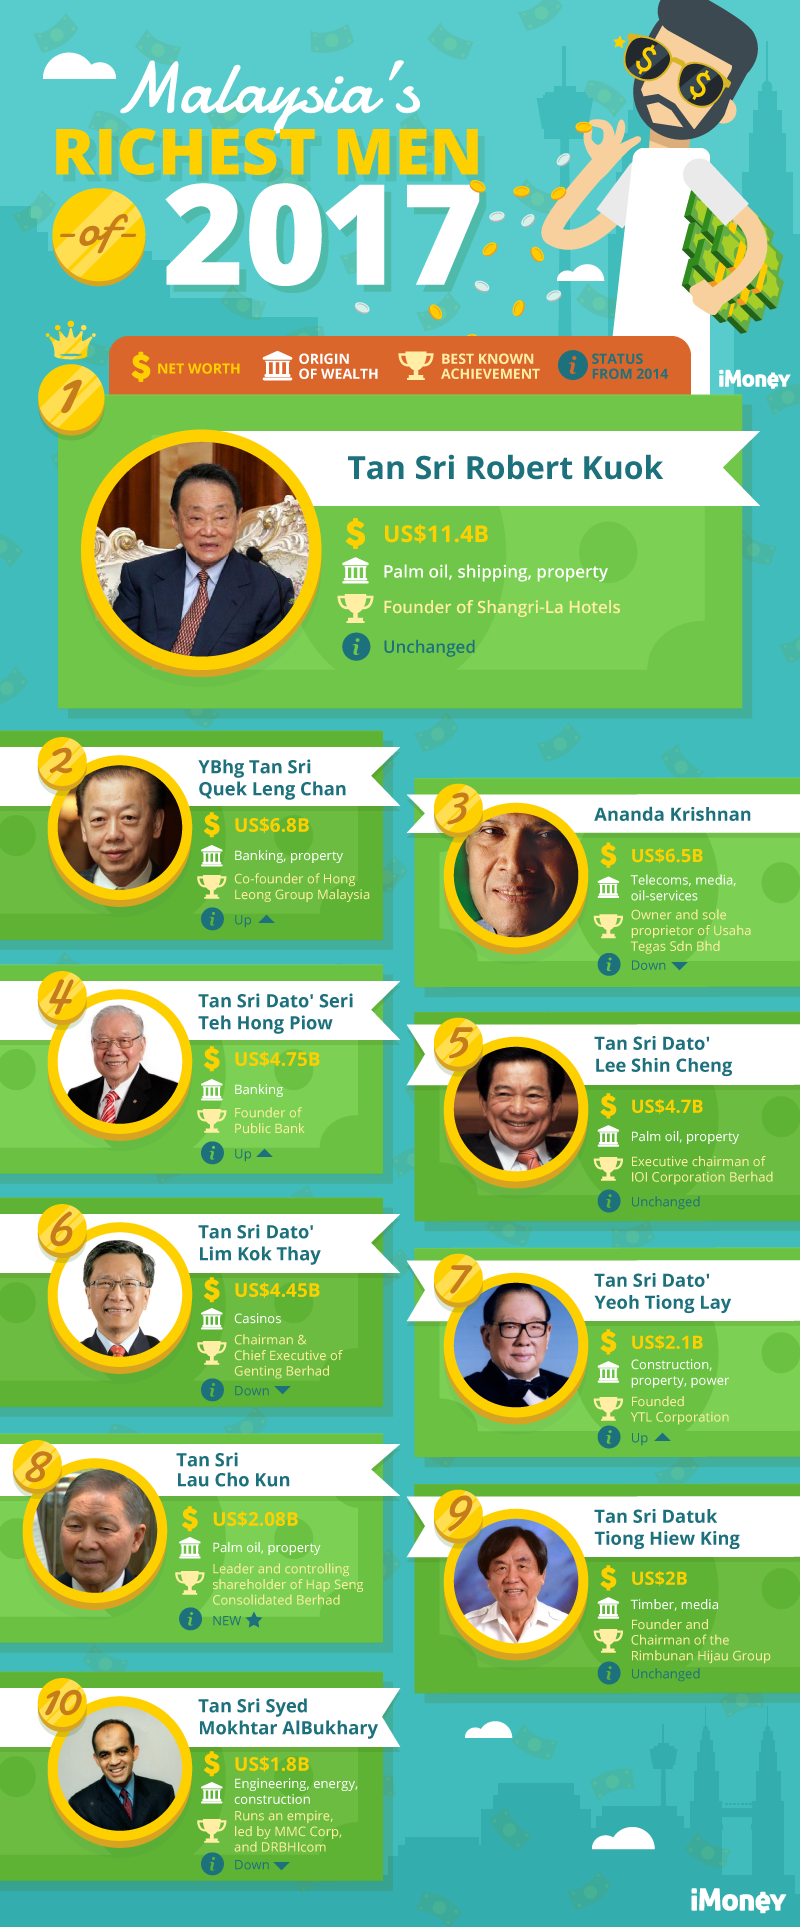 top 10 richest people in malaysia doc Top 10 richest women in china the richest women on the list are as follows: top 10 top 10 key economic words in 2016 editor's picks.